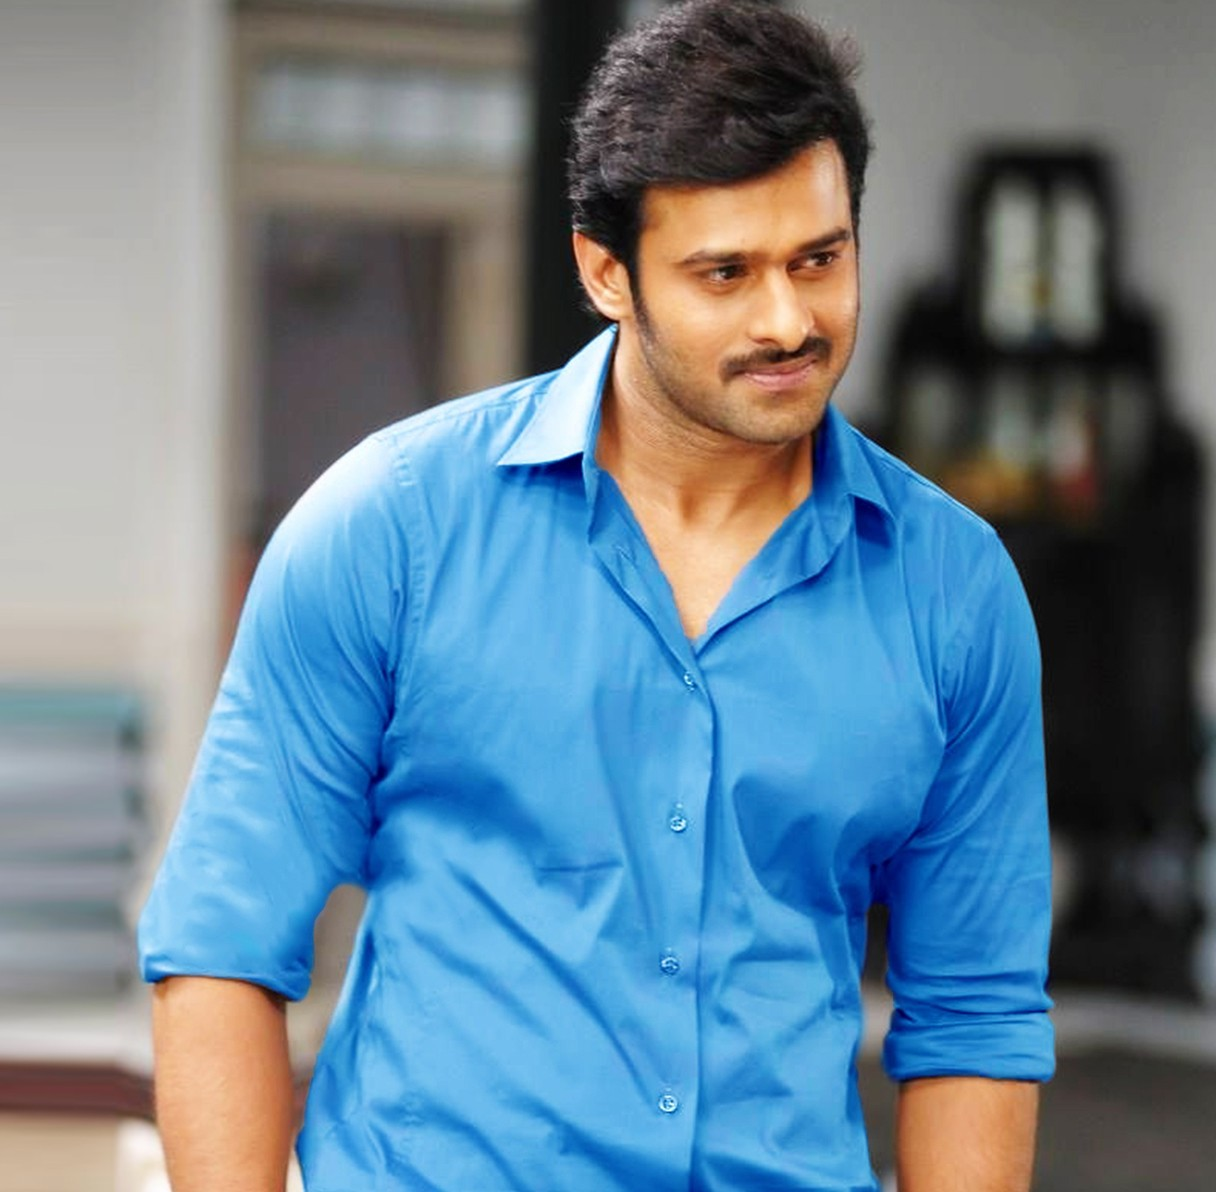 new letest hd wallpaper: south indian prabhas hd wallpaper download